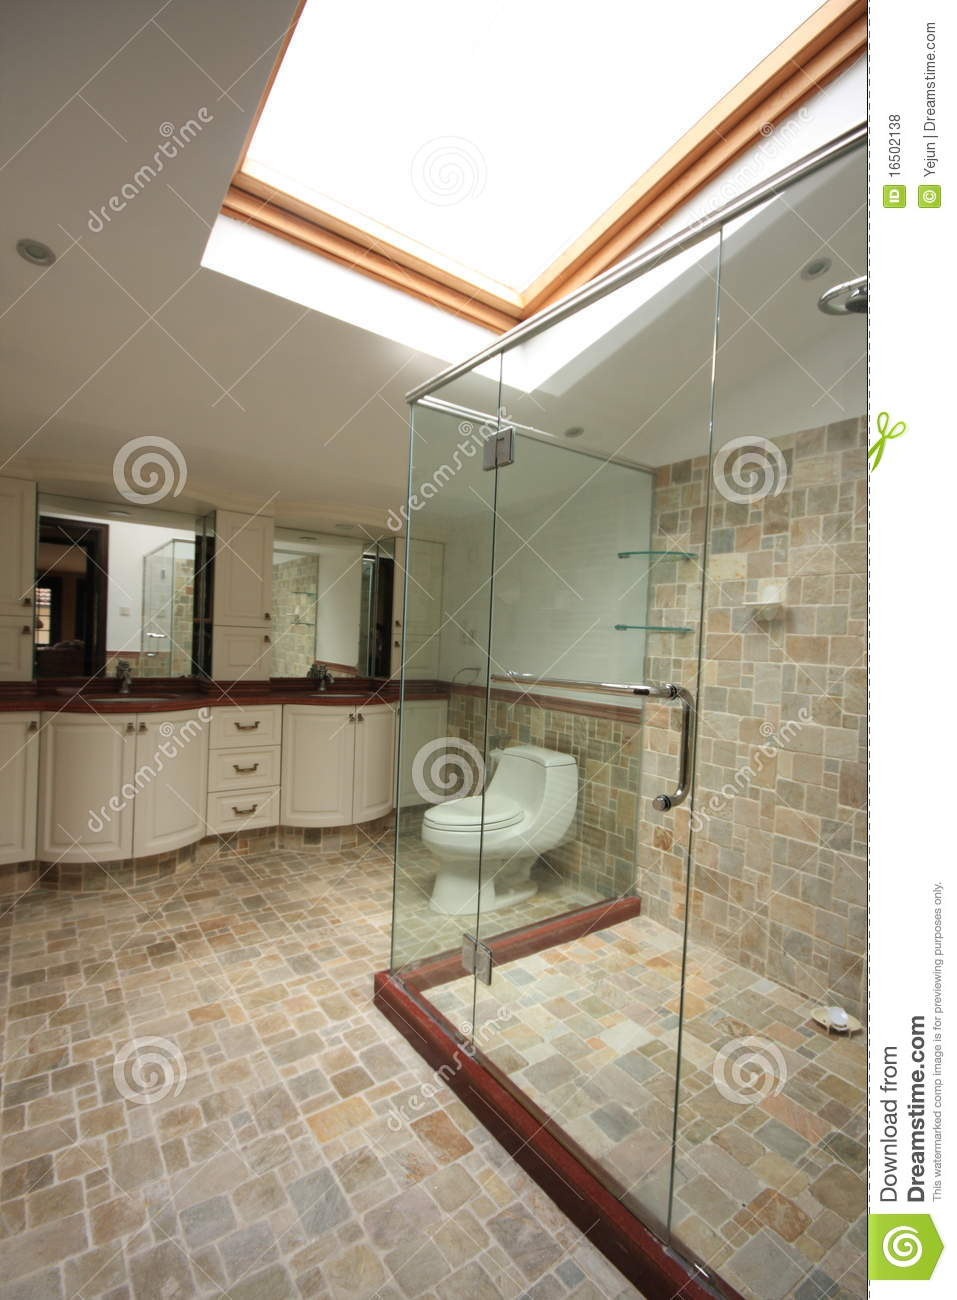 Bathroom Royalty Free Stock Photos Image 16502138